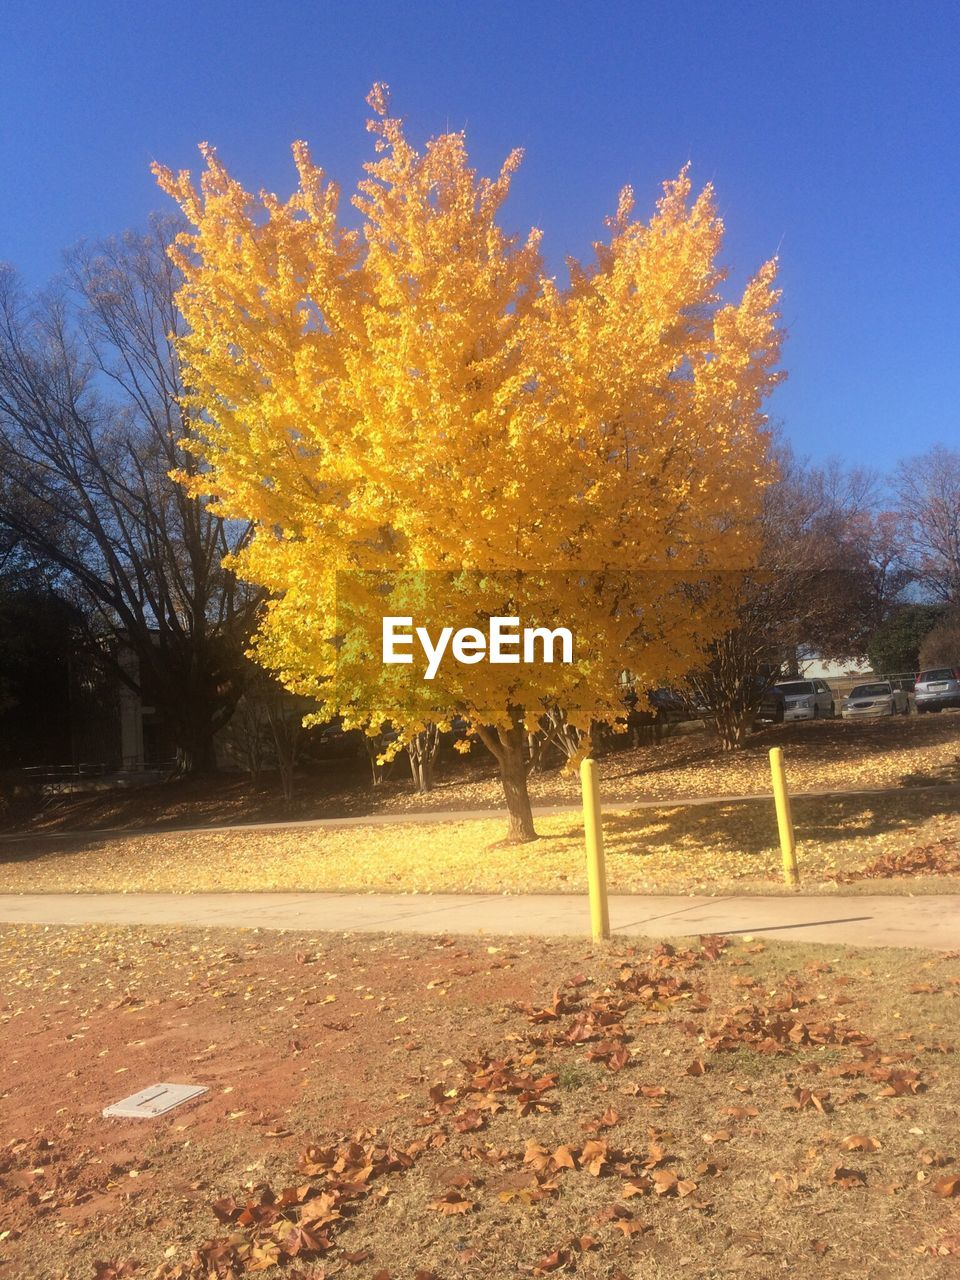 tree, autumn, change, nature, beauty in nature, leaf, tranquility, day, no people, outdoors, tranquil scene, scenics, field, landscape, sky, growth, yellow, branch, clear sky